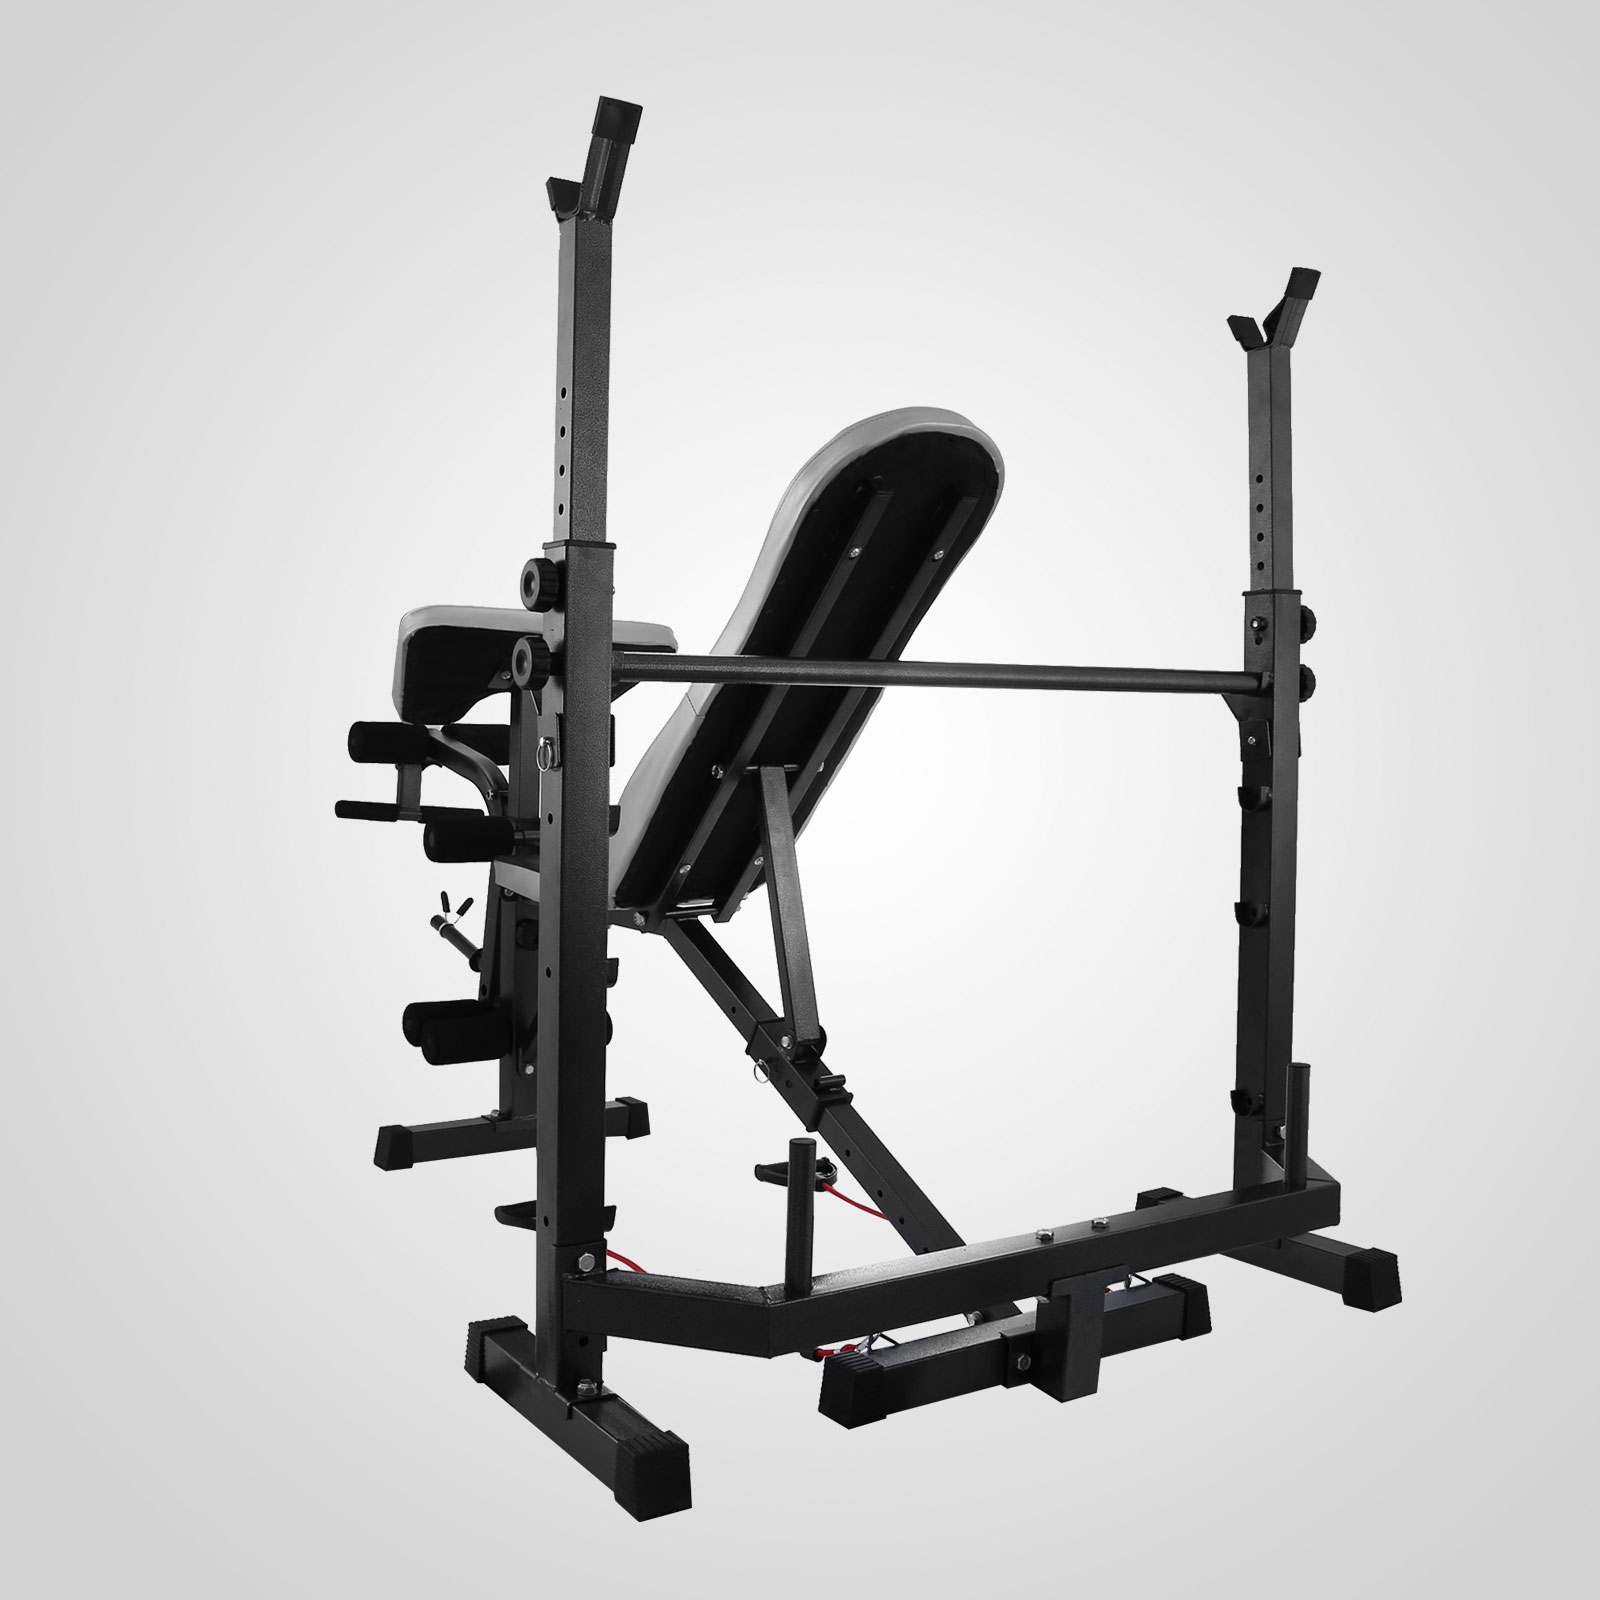 Home Gym Bench Set: Weight Bench Set Home Gym Deluxe With 660Lbs Weights